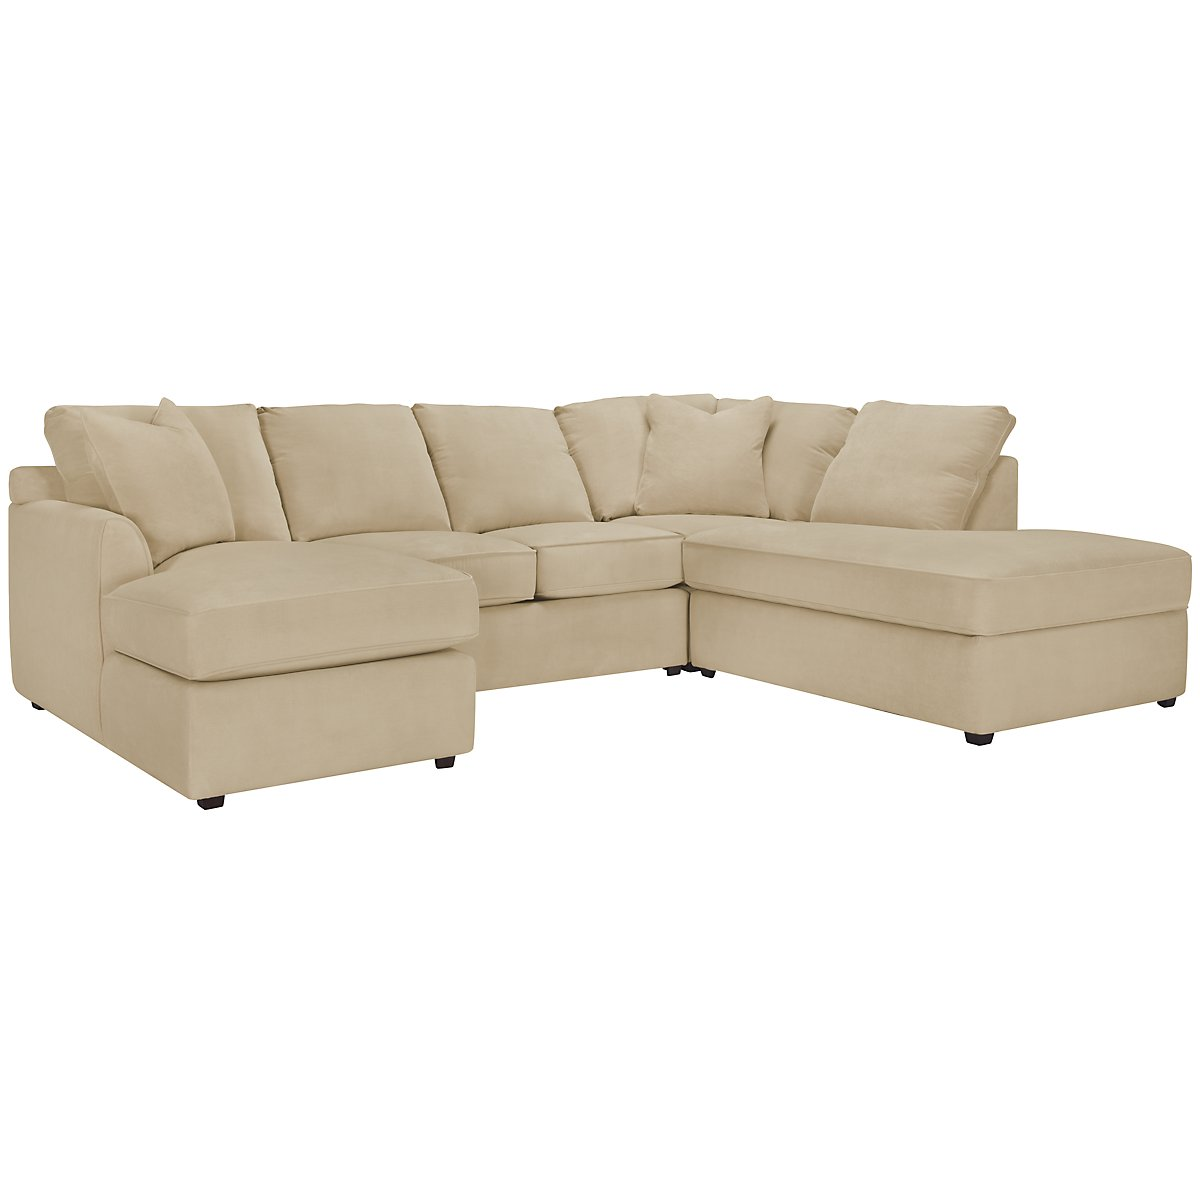 Express3 Light Beige Microfiber Small Right Bumper Sectional